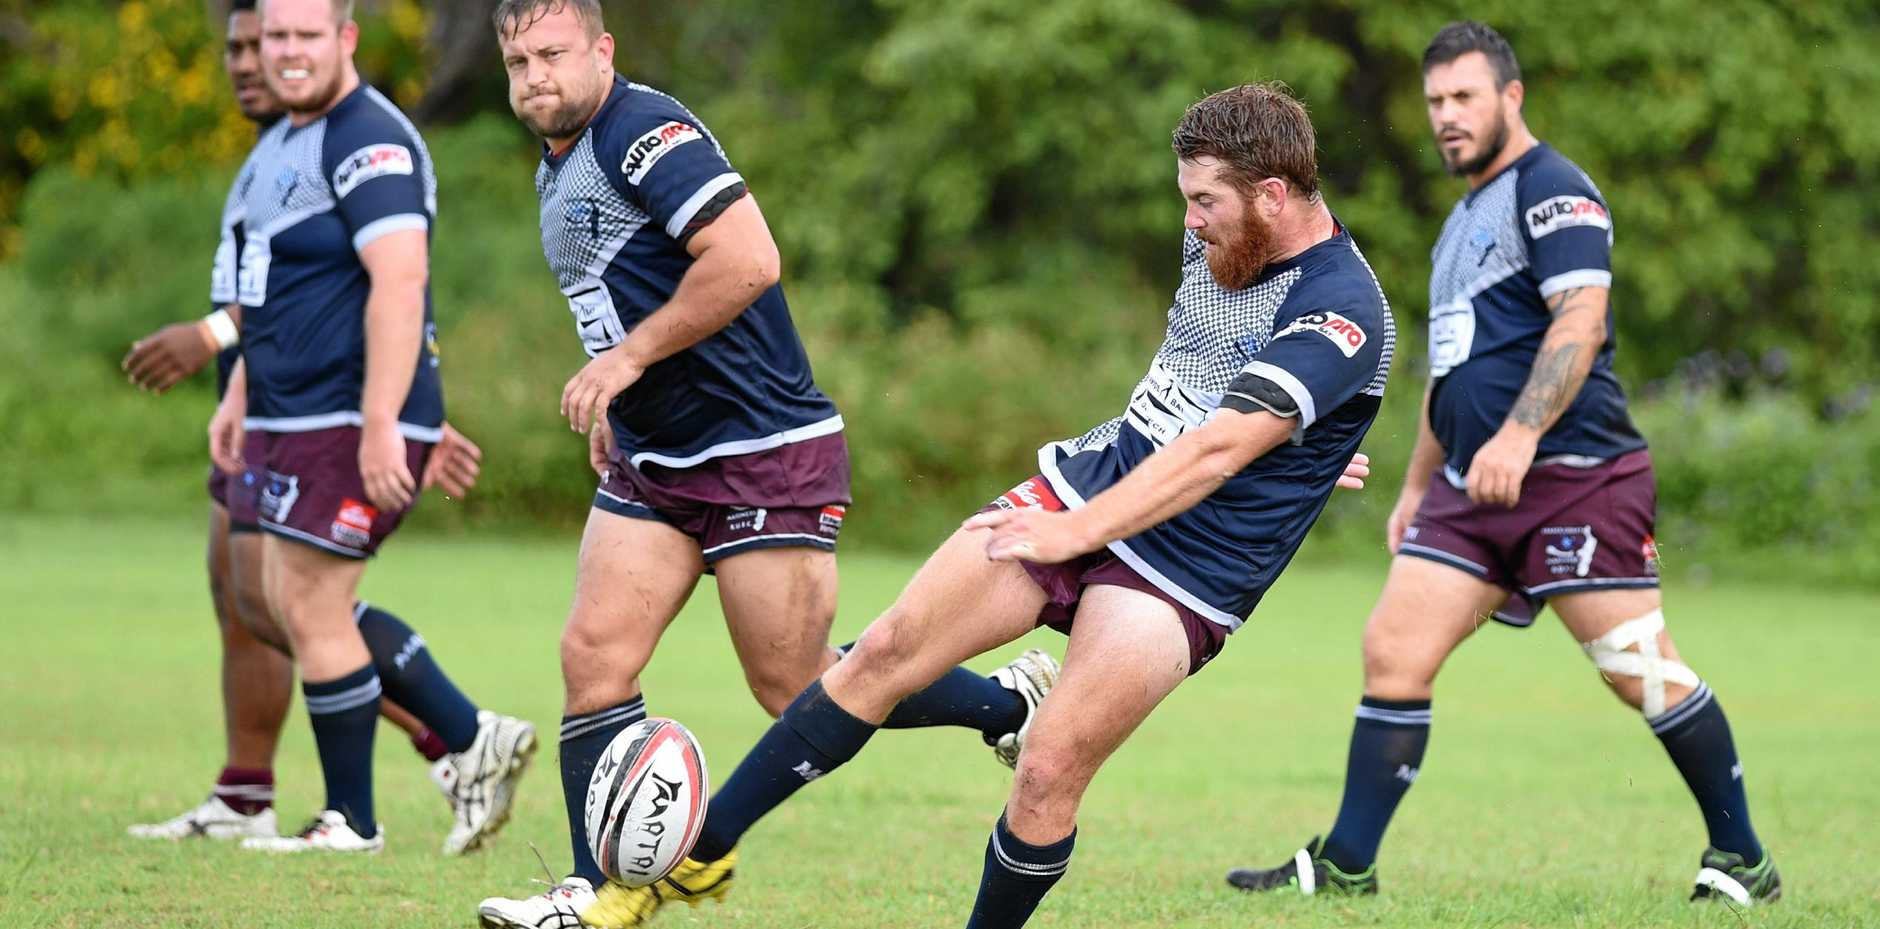 Rugby union - Fraser Coast Mariners v Gympie Hammers. Kale Hendle kicks for touch.